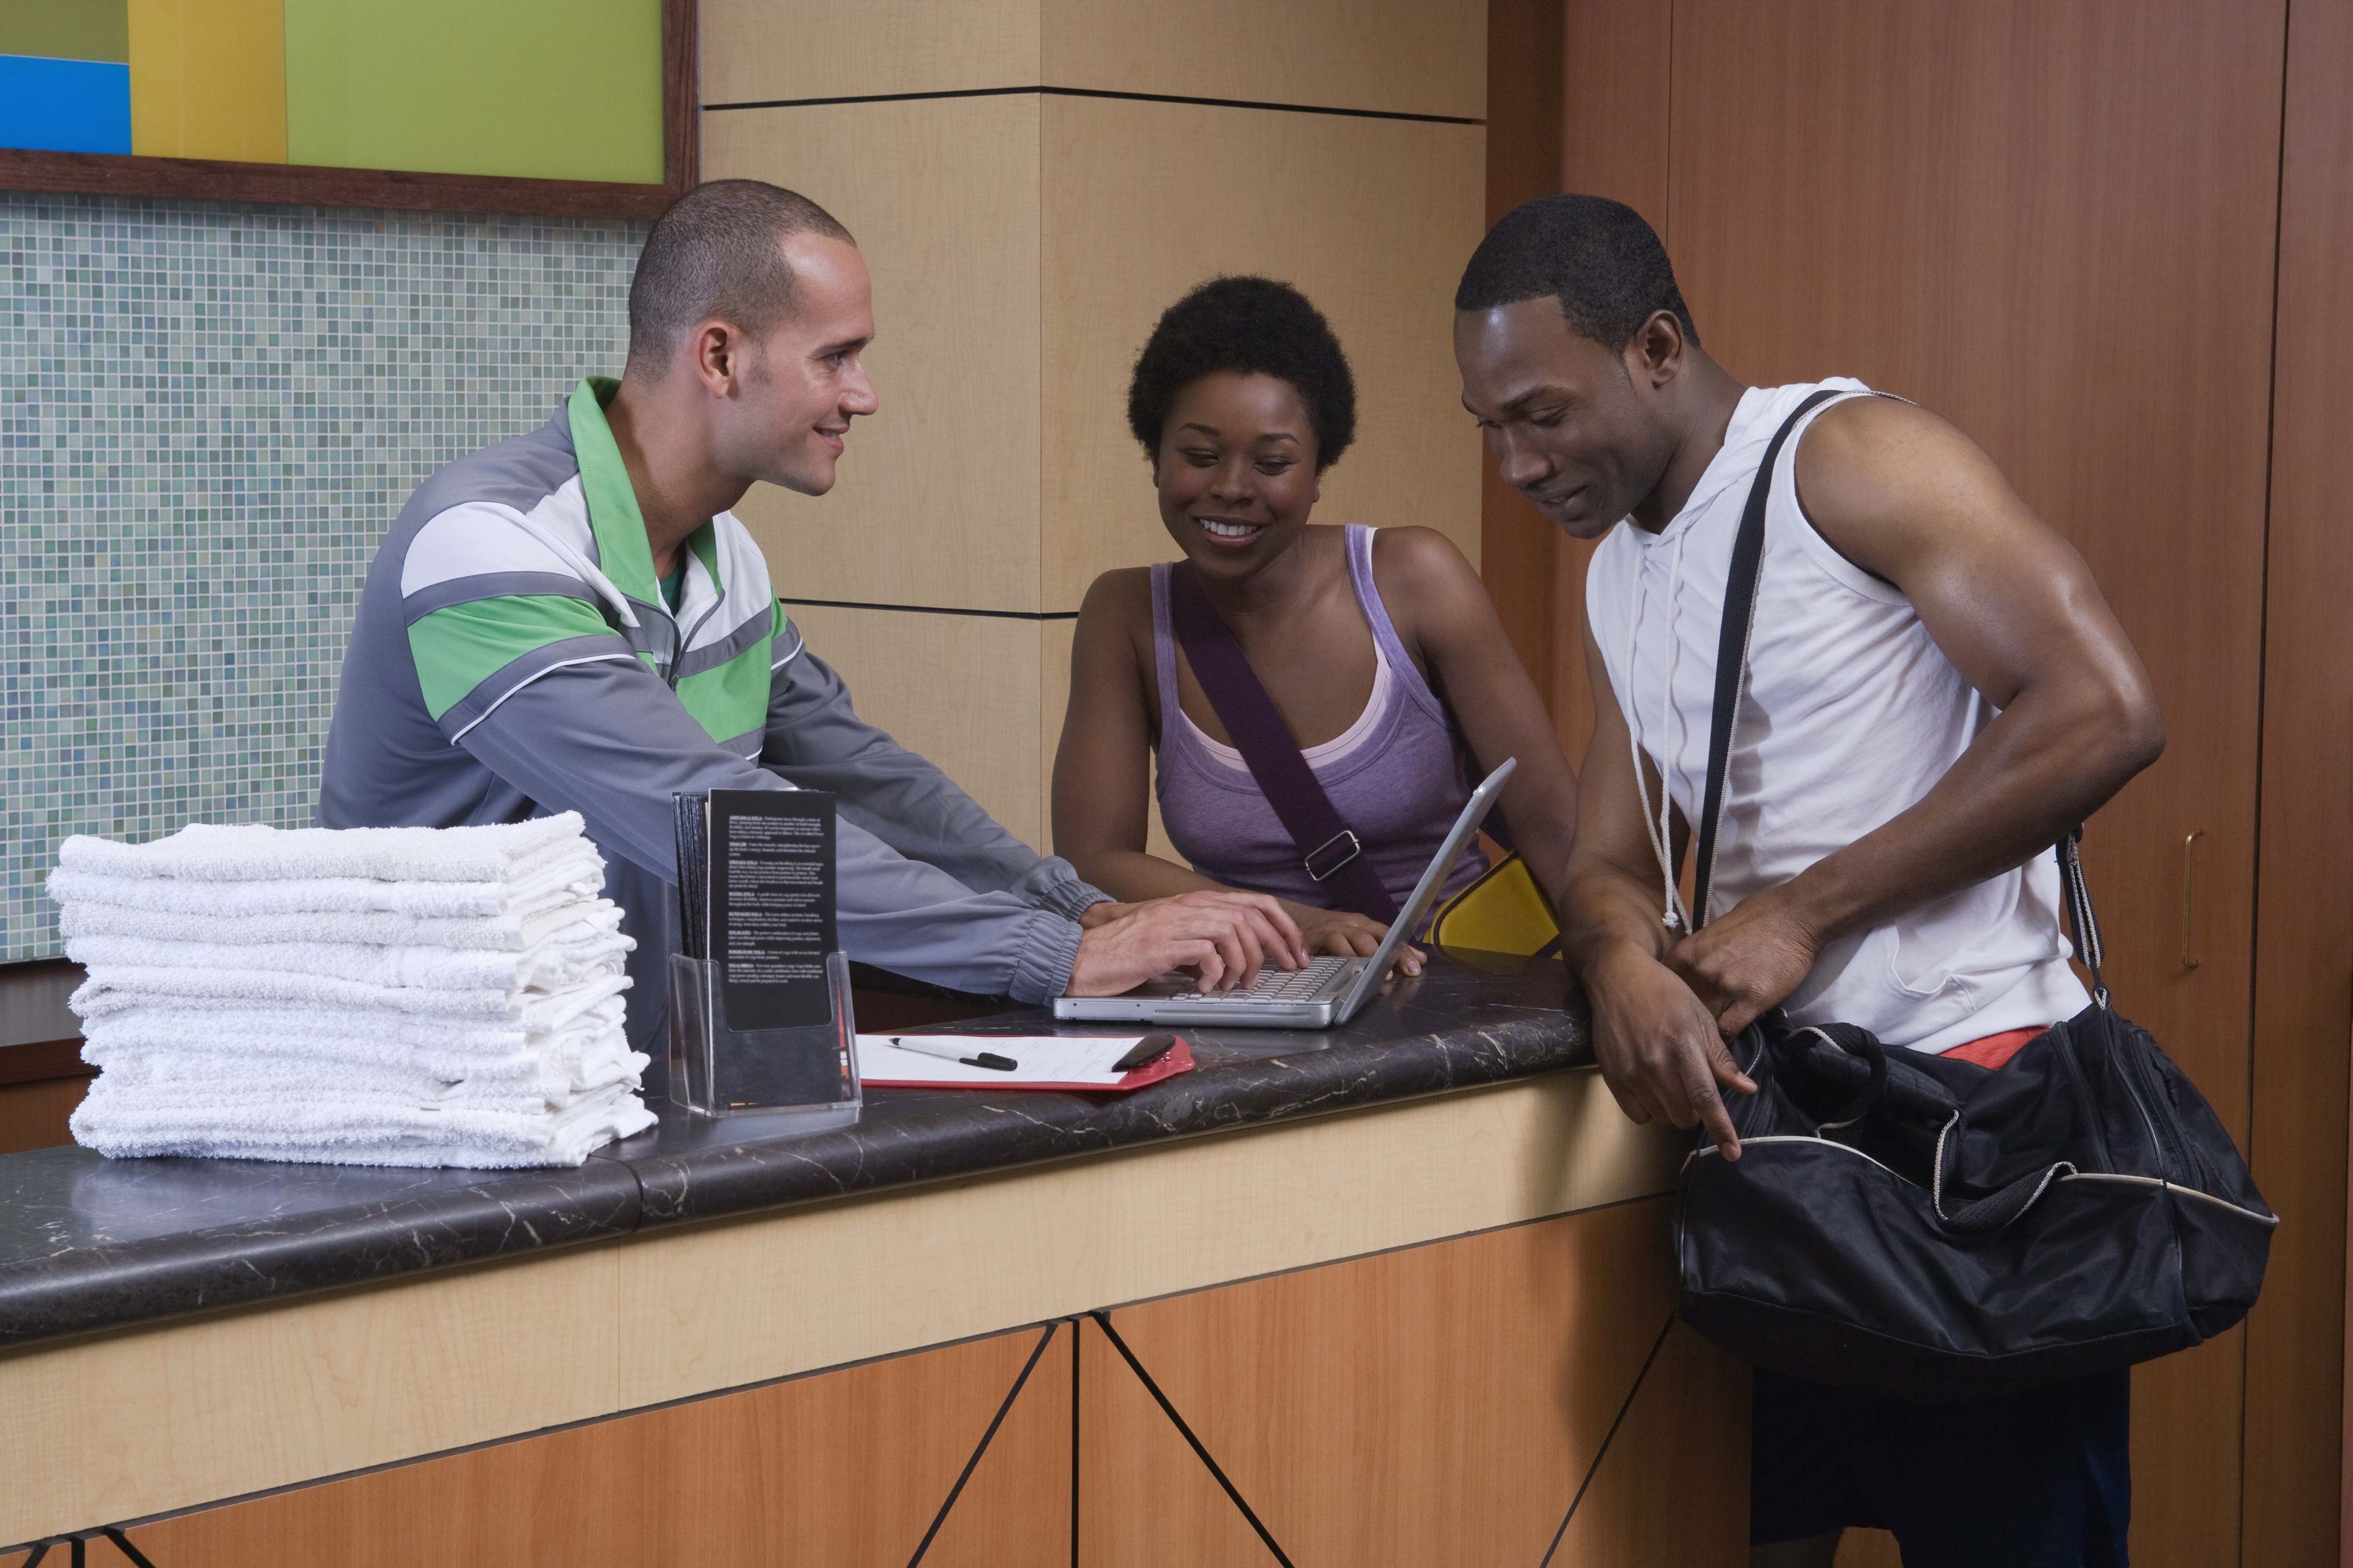 Gym employee helping couple at front desk 7de995aca0ba5